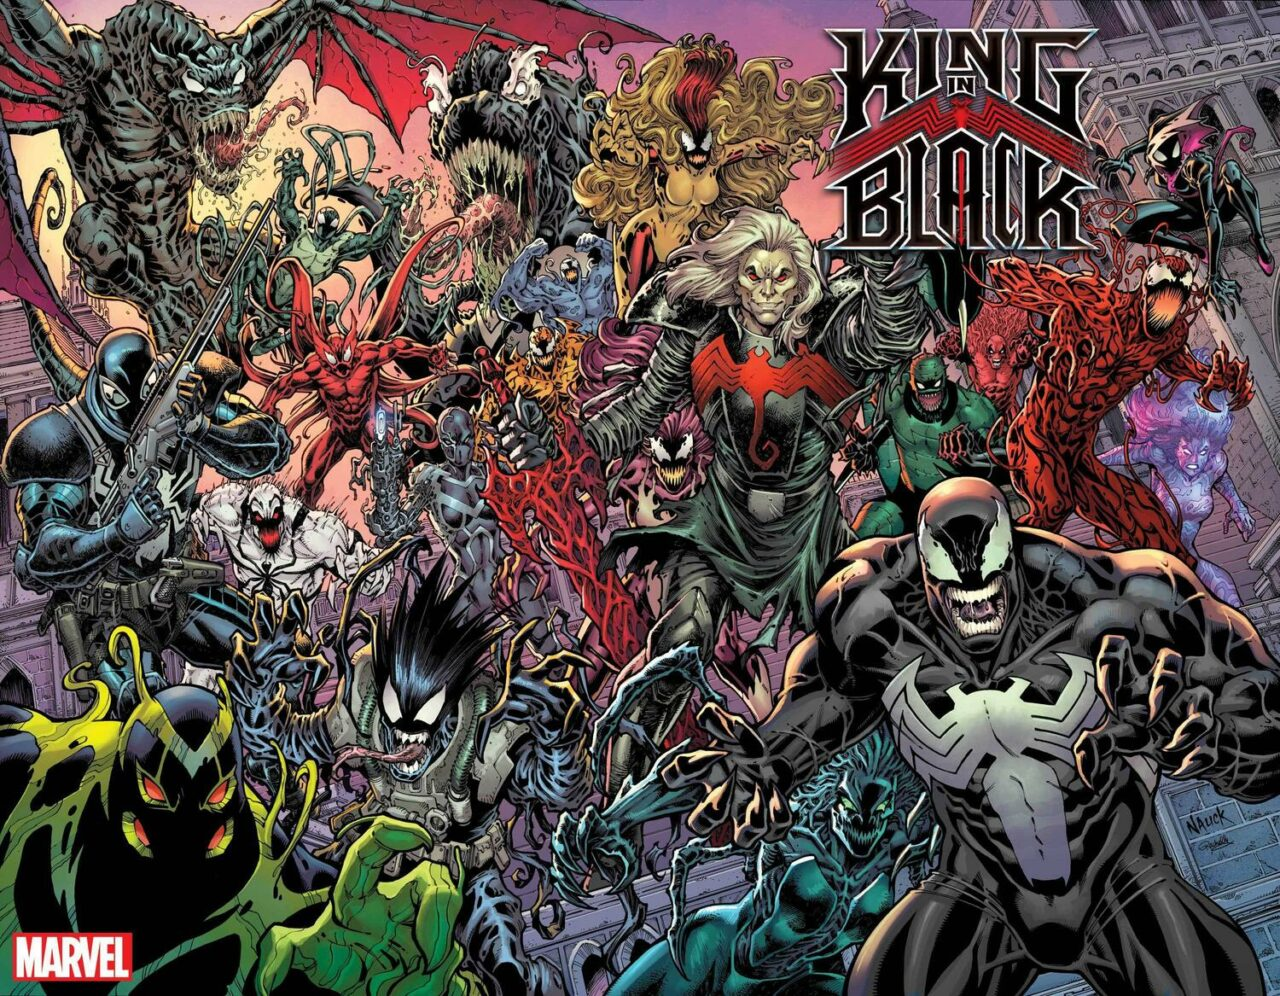 kinginblack2020001 every symbiote ever variant